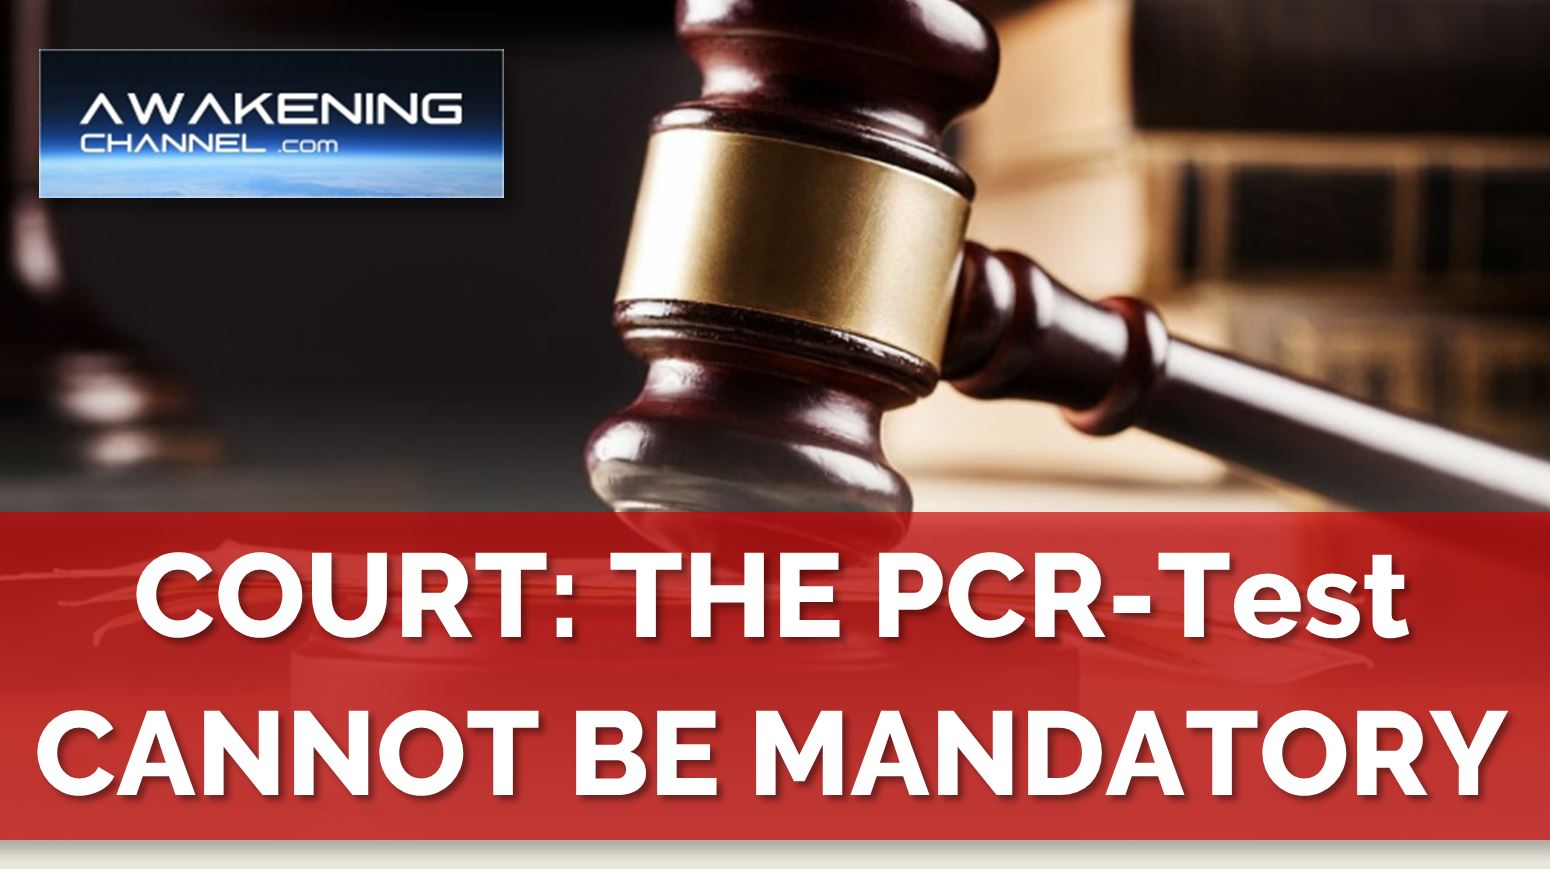 COURT VICTORY! The Gov Cannot Demand Anyone to Take a PCR-Test